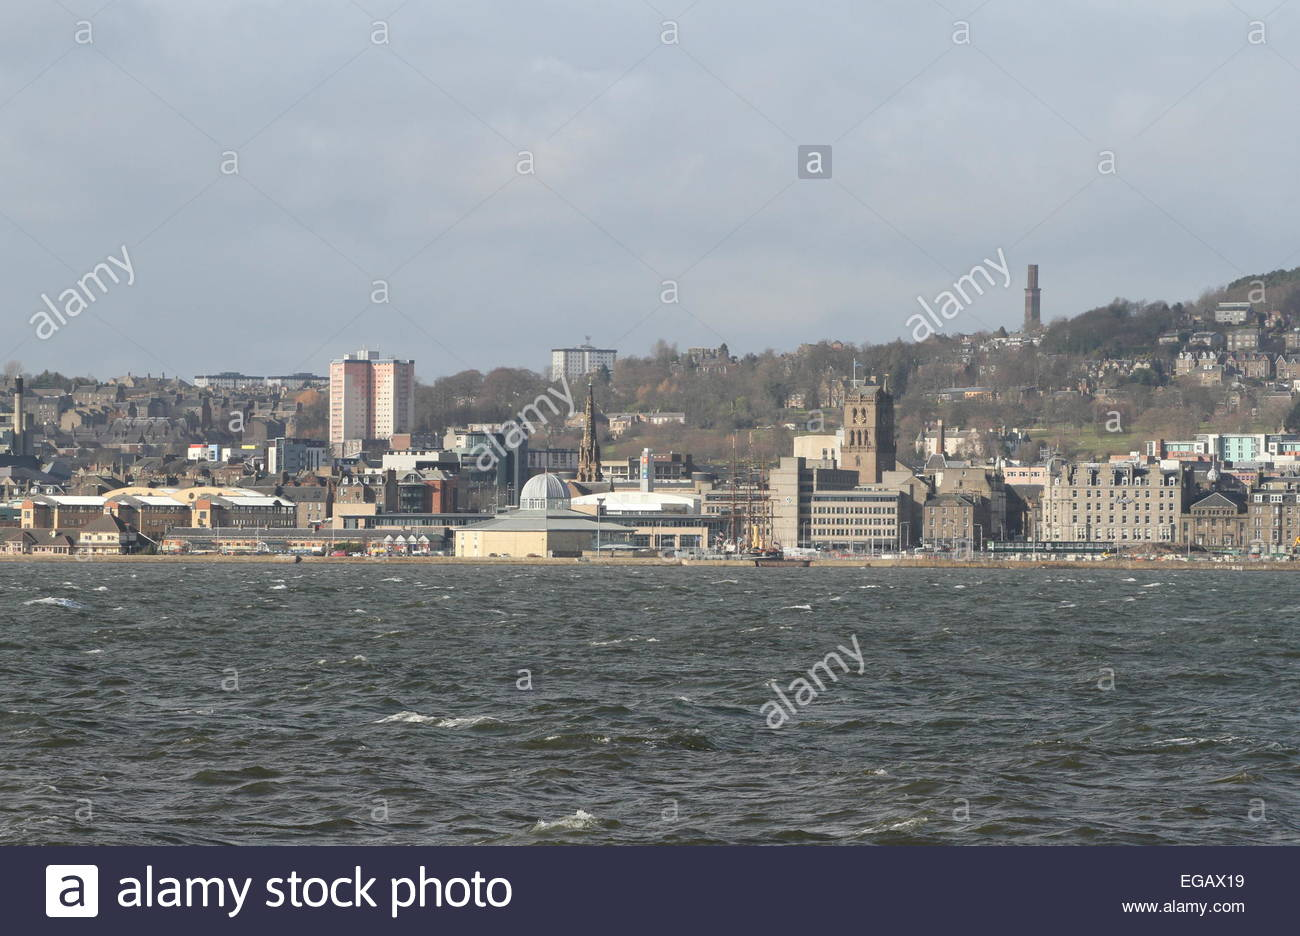 Discovery Point Dundee waterfront Scotland February 2015 Stock Photo